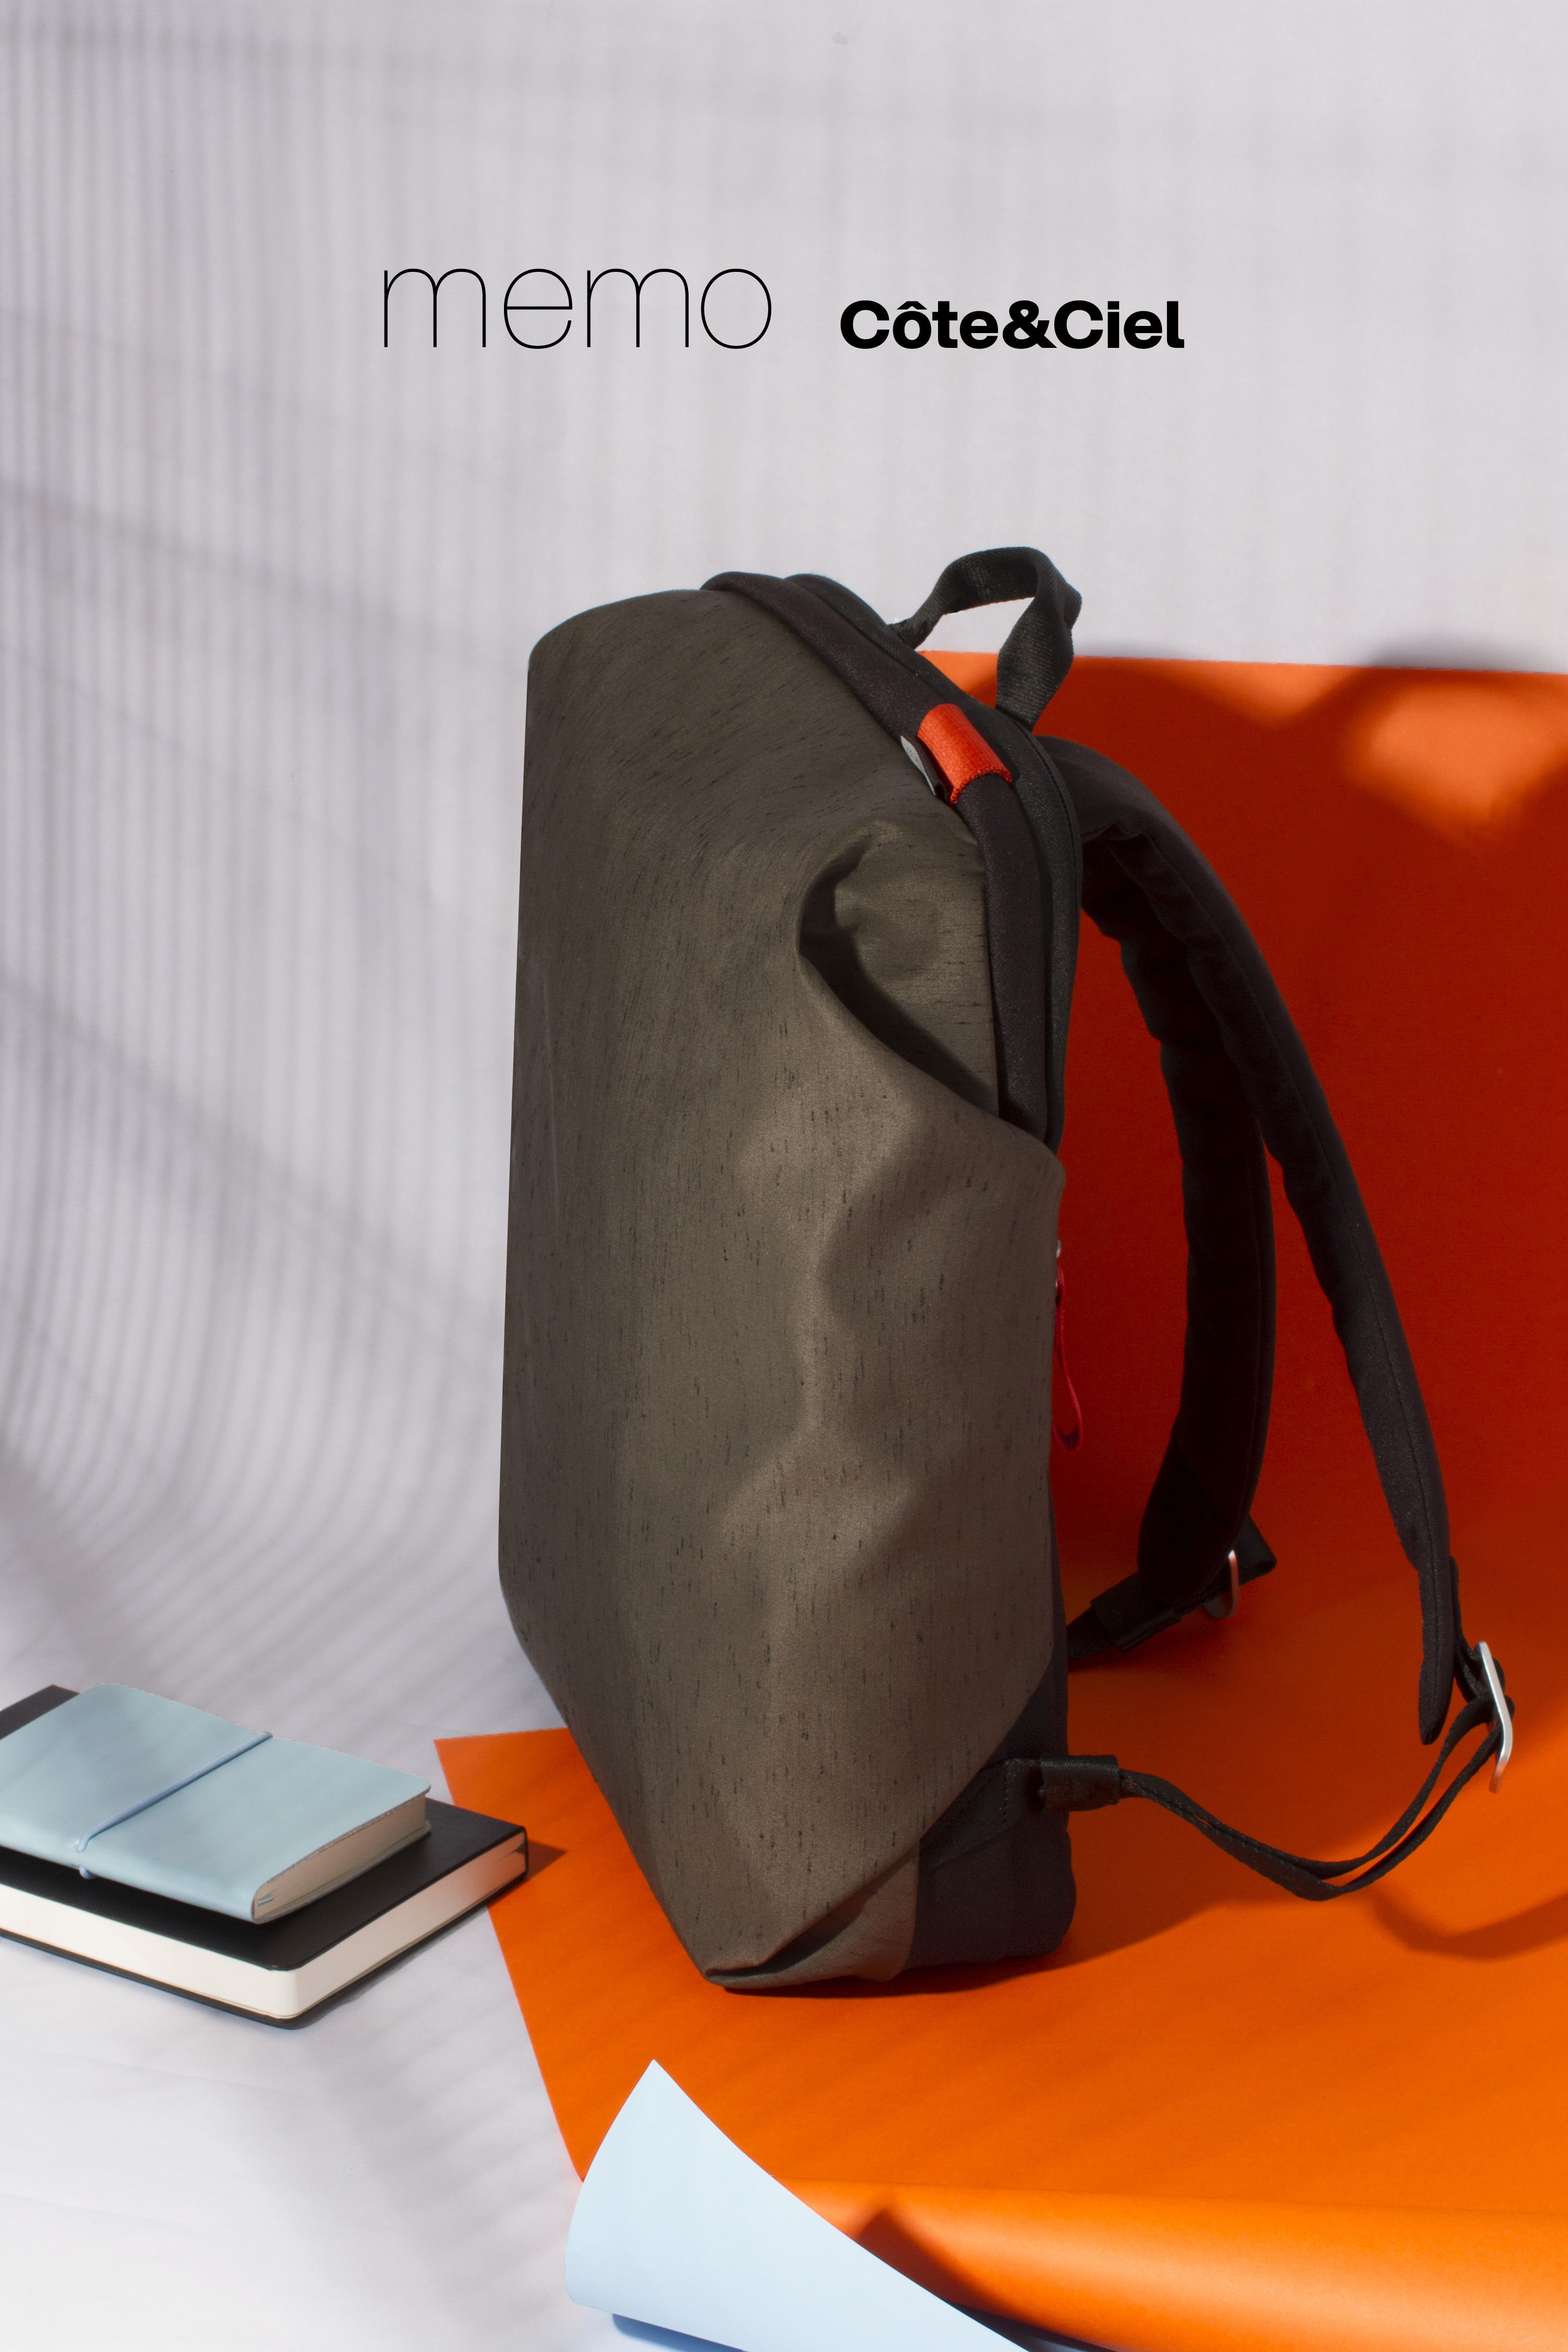 ceee4eb9b3 Deep Forest Green Zephyr Backpack - The memo Côte Ciel is a completely new  minimalist diffusion line focused on lightweight functionality.